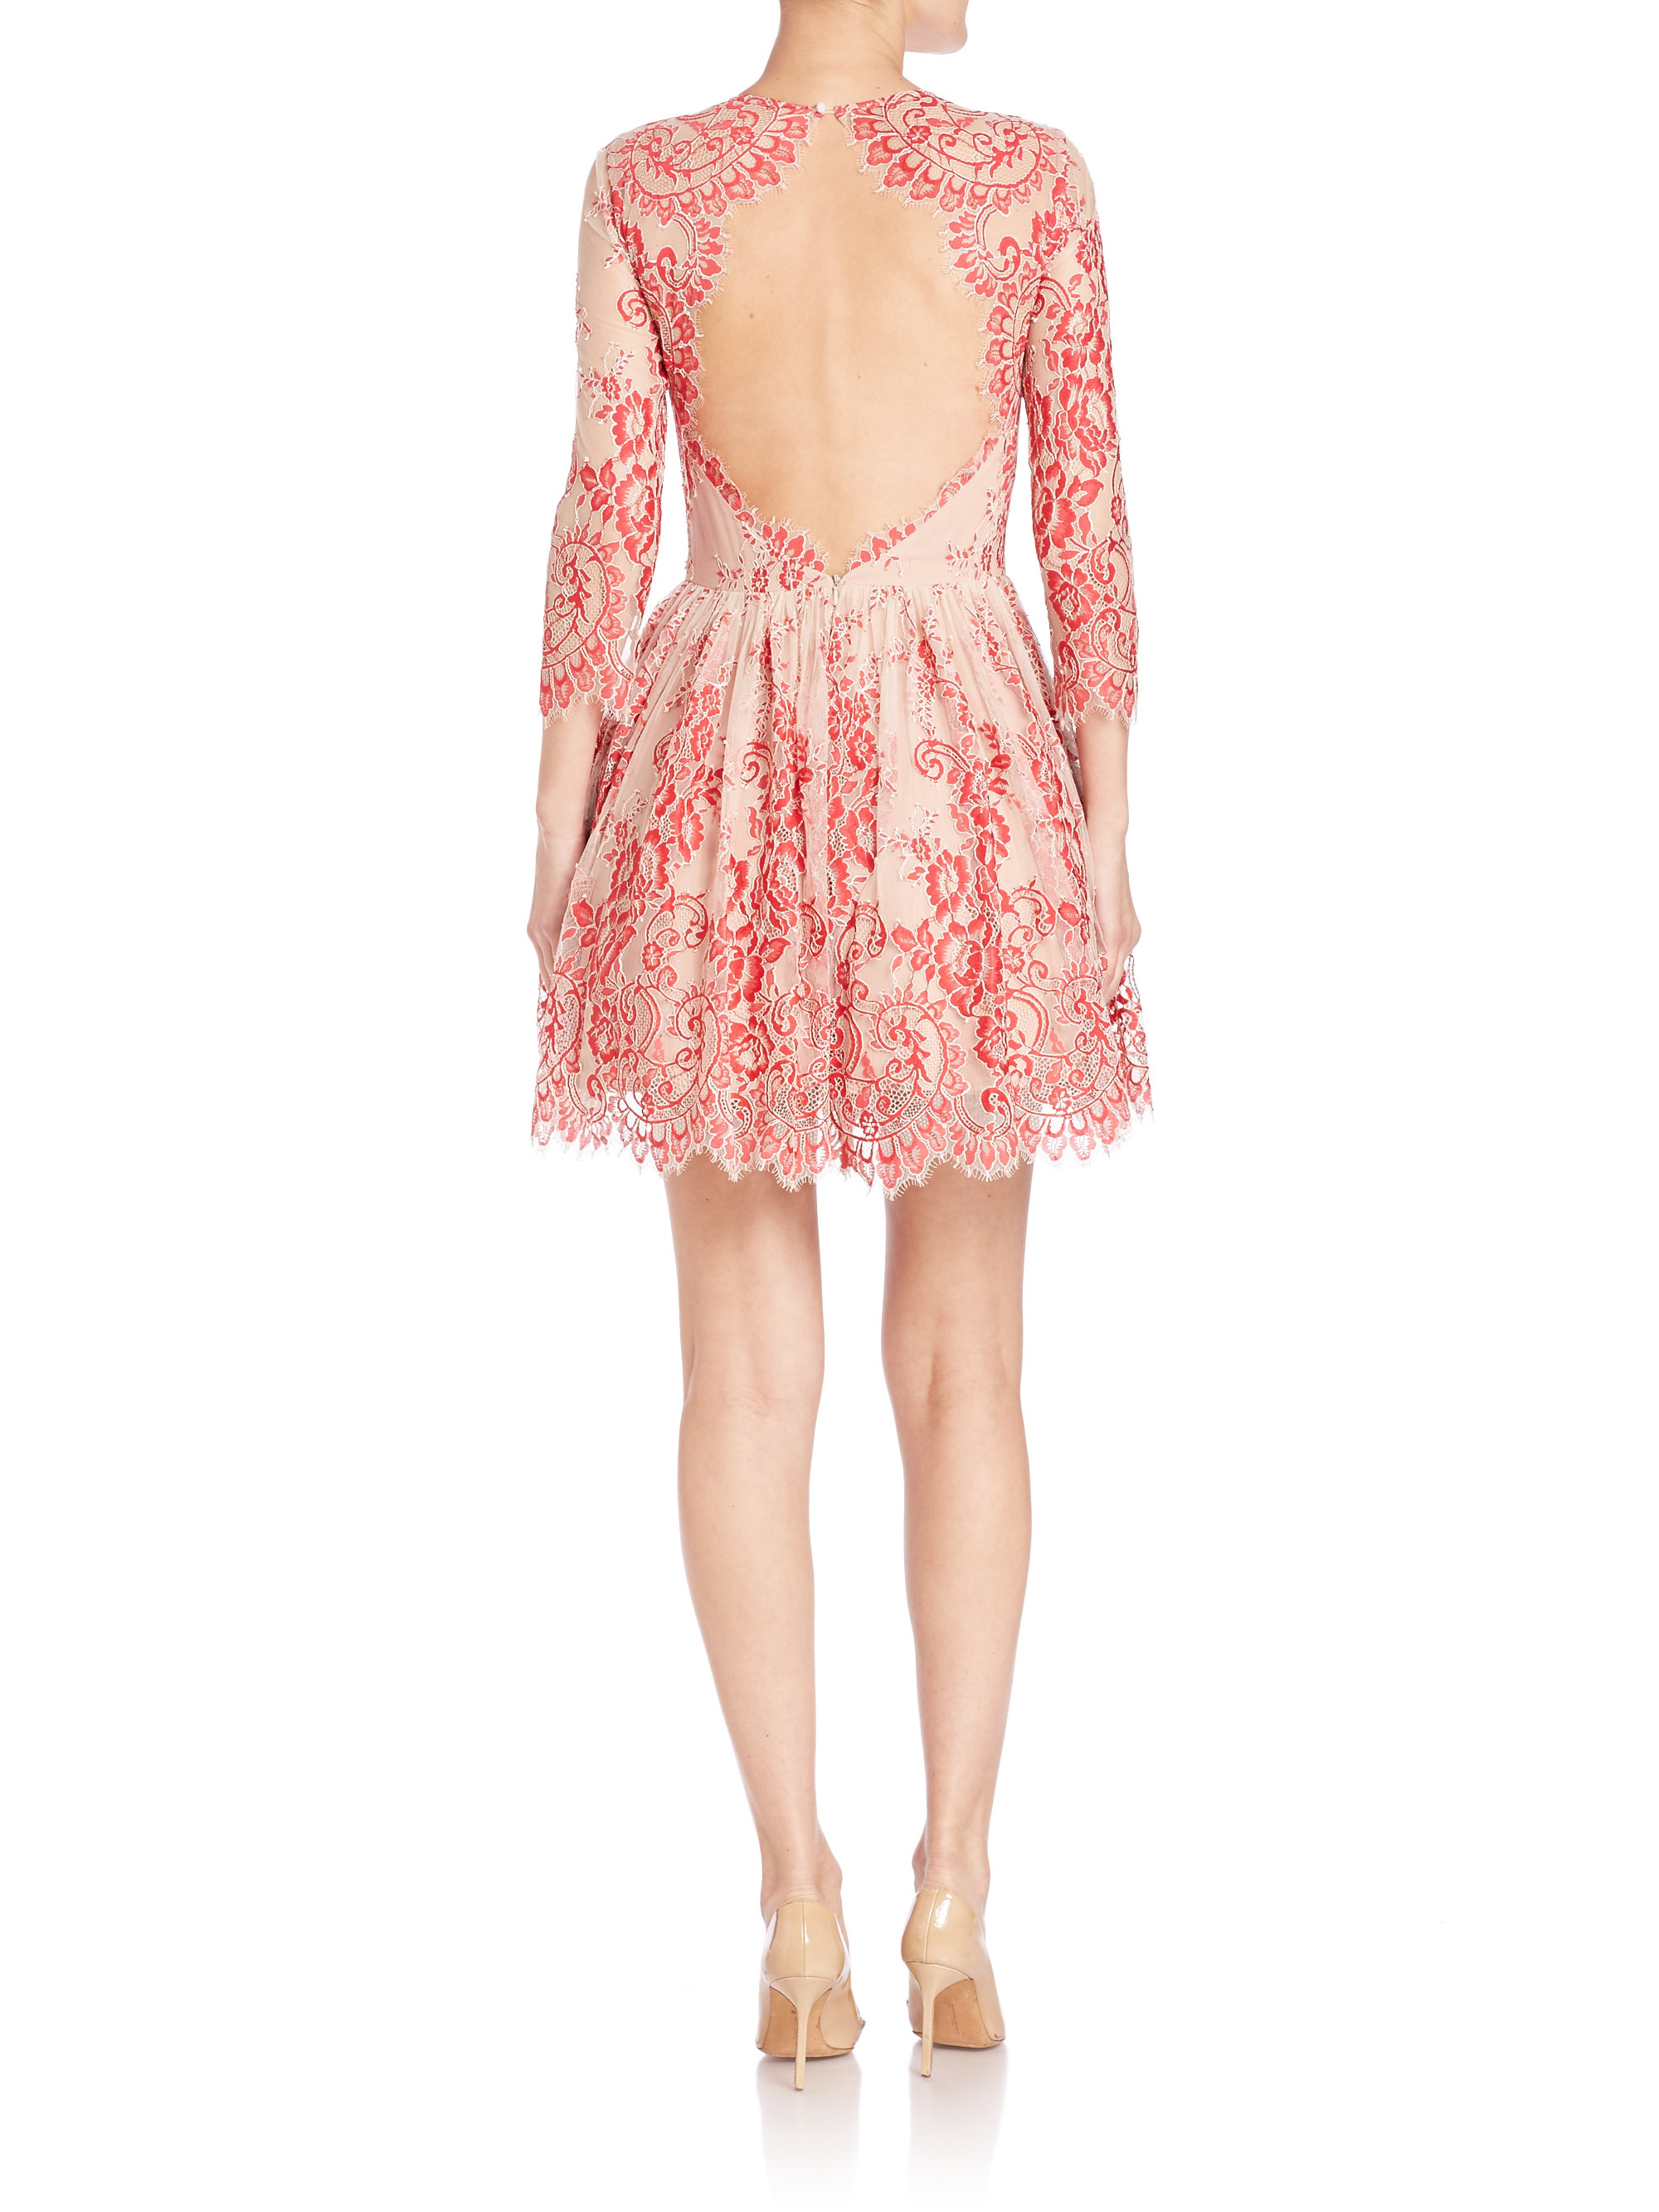 Alexis Bella Lace Fit Amp Flare Dress In Red Lace Red Lyst